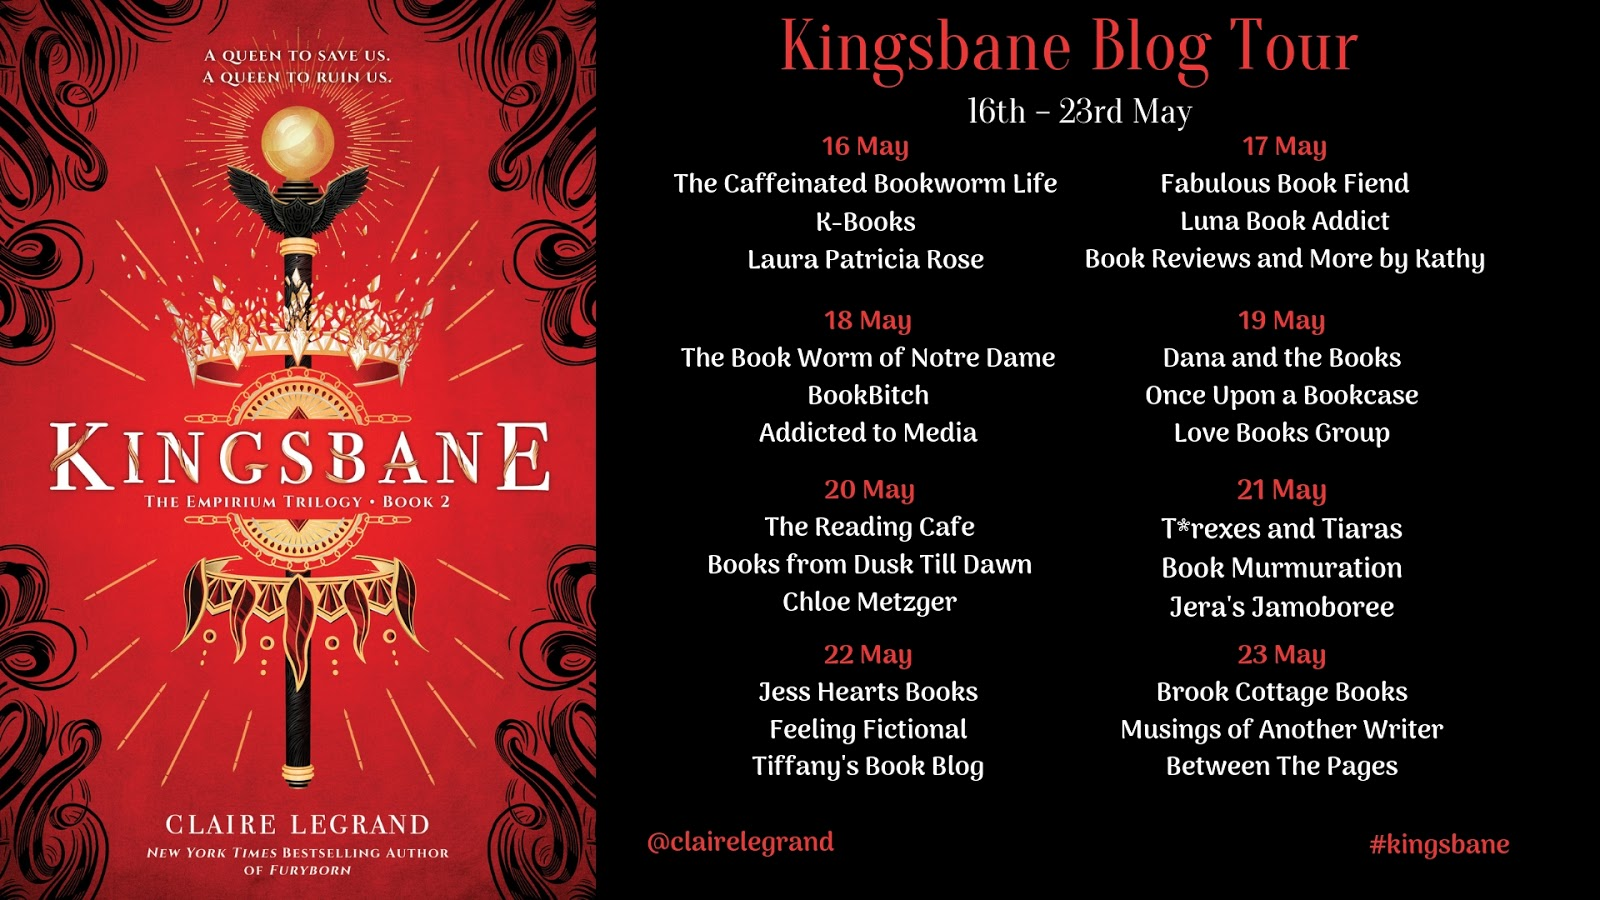 Kingsbane by Claire Legrand   Exclusive Excerpt   Superior Young Adult Fiction